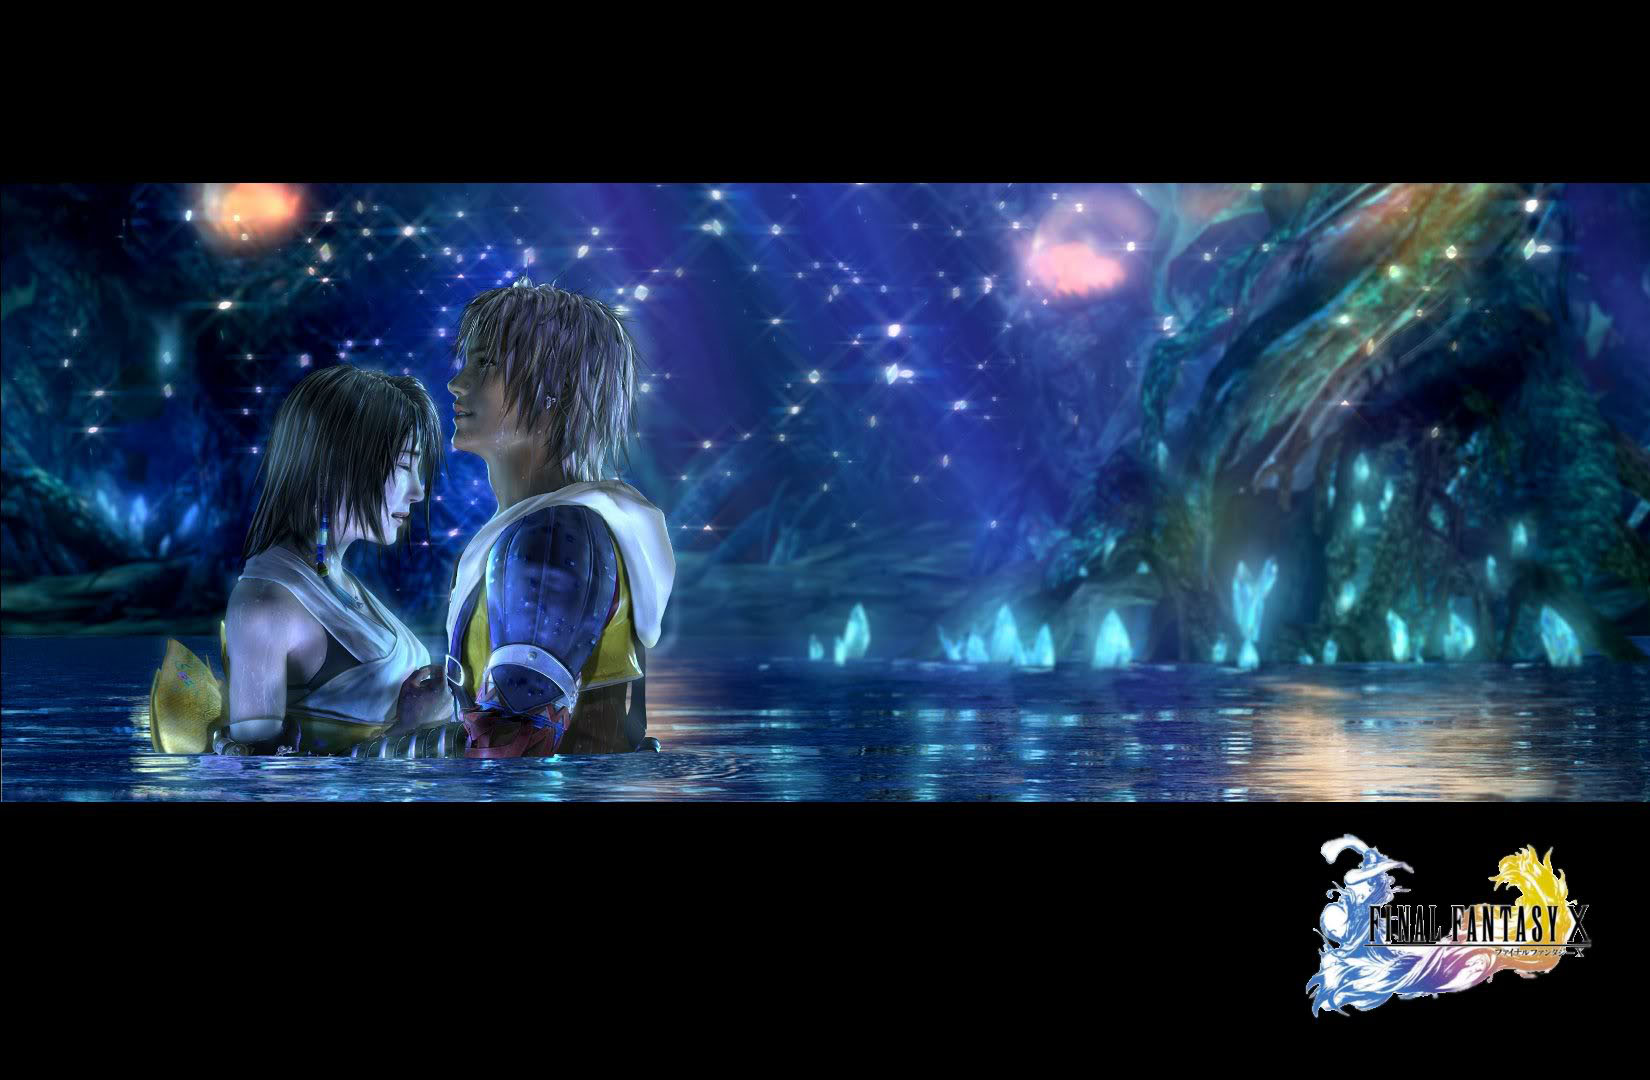 Yuna-Tidus-Final-Fantasy-Video-Games-Background-wallpaper-wpc90010919